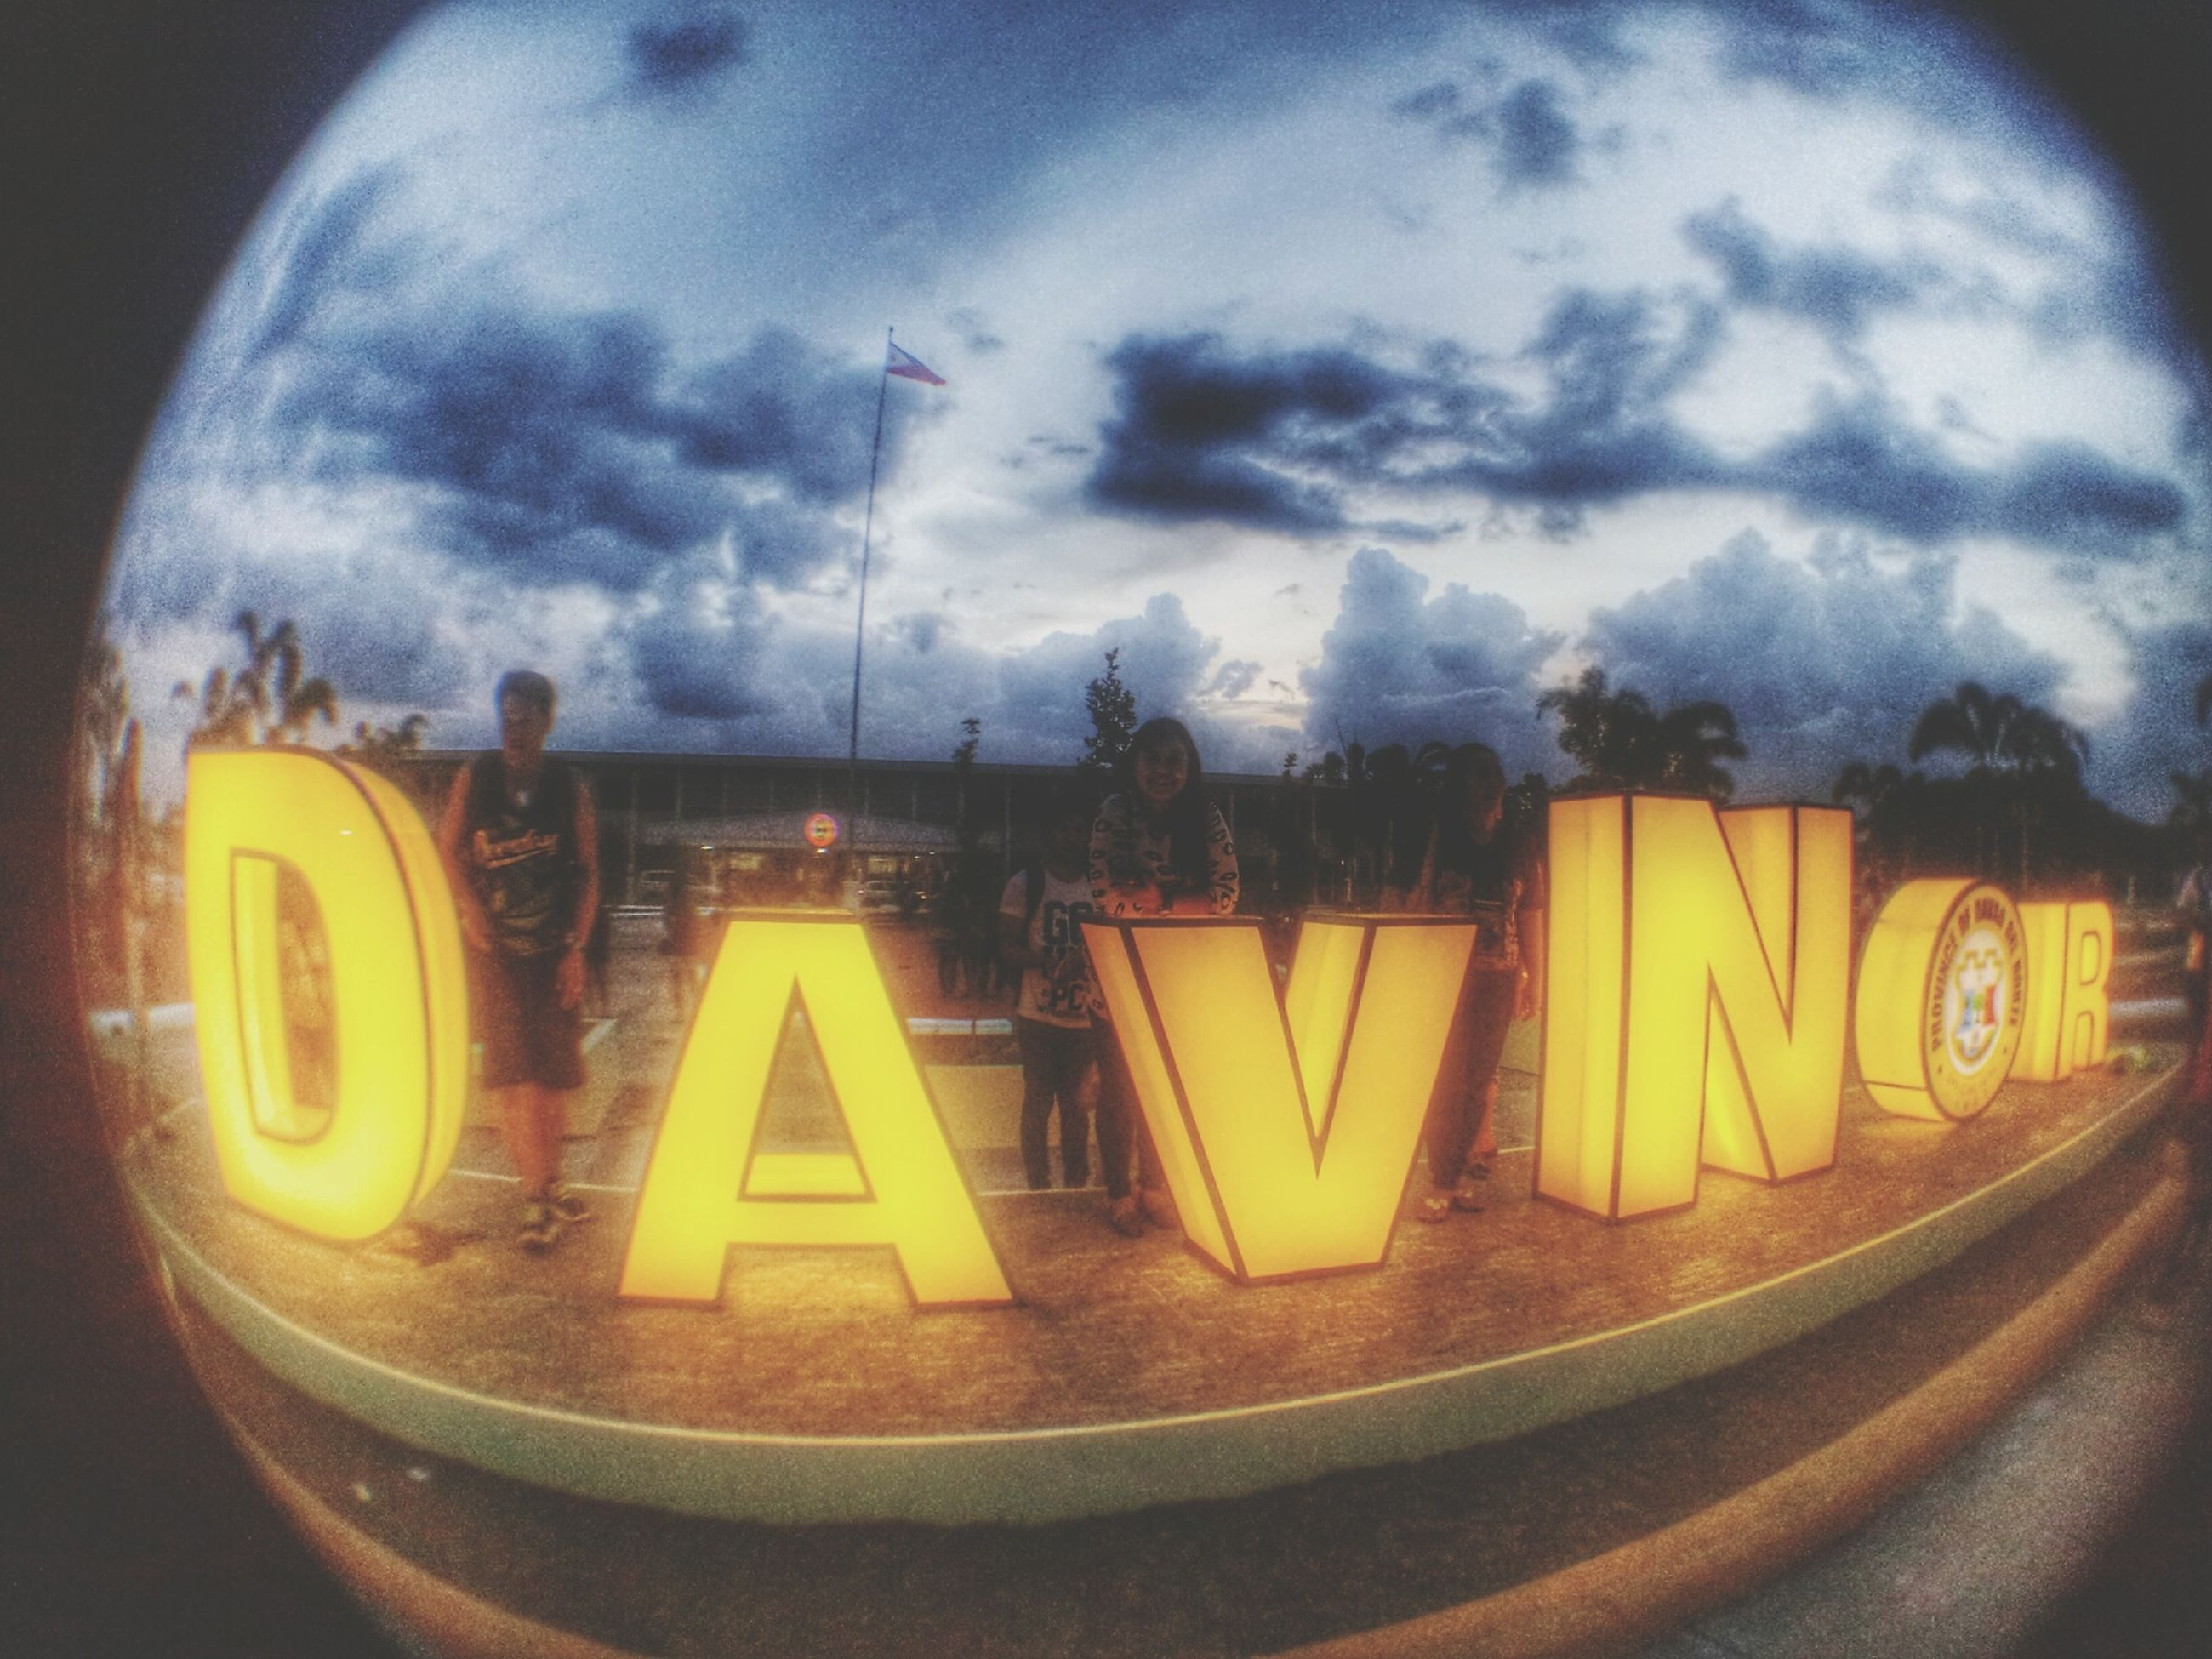 sky, text, yellow, communication, western script, cloud - sky, transportation, illuminated, cloudy, circle, road sign, cloud, no people, capital letter, outdoors, close-up, information sign, night, low angle view, glass - material